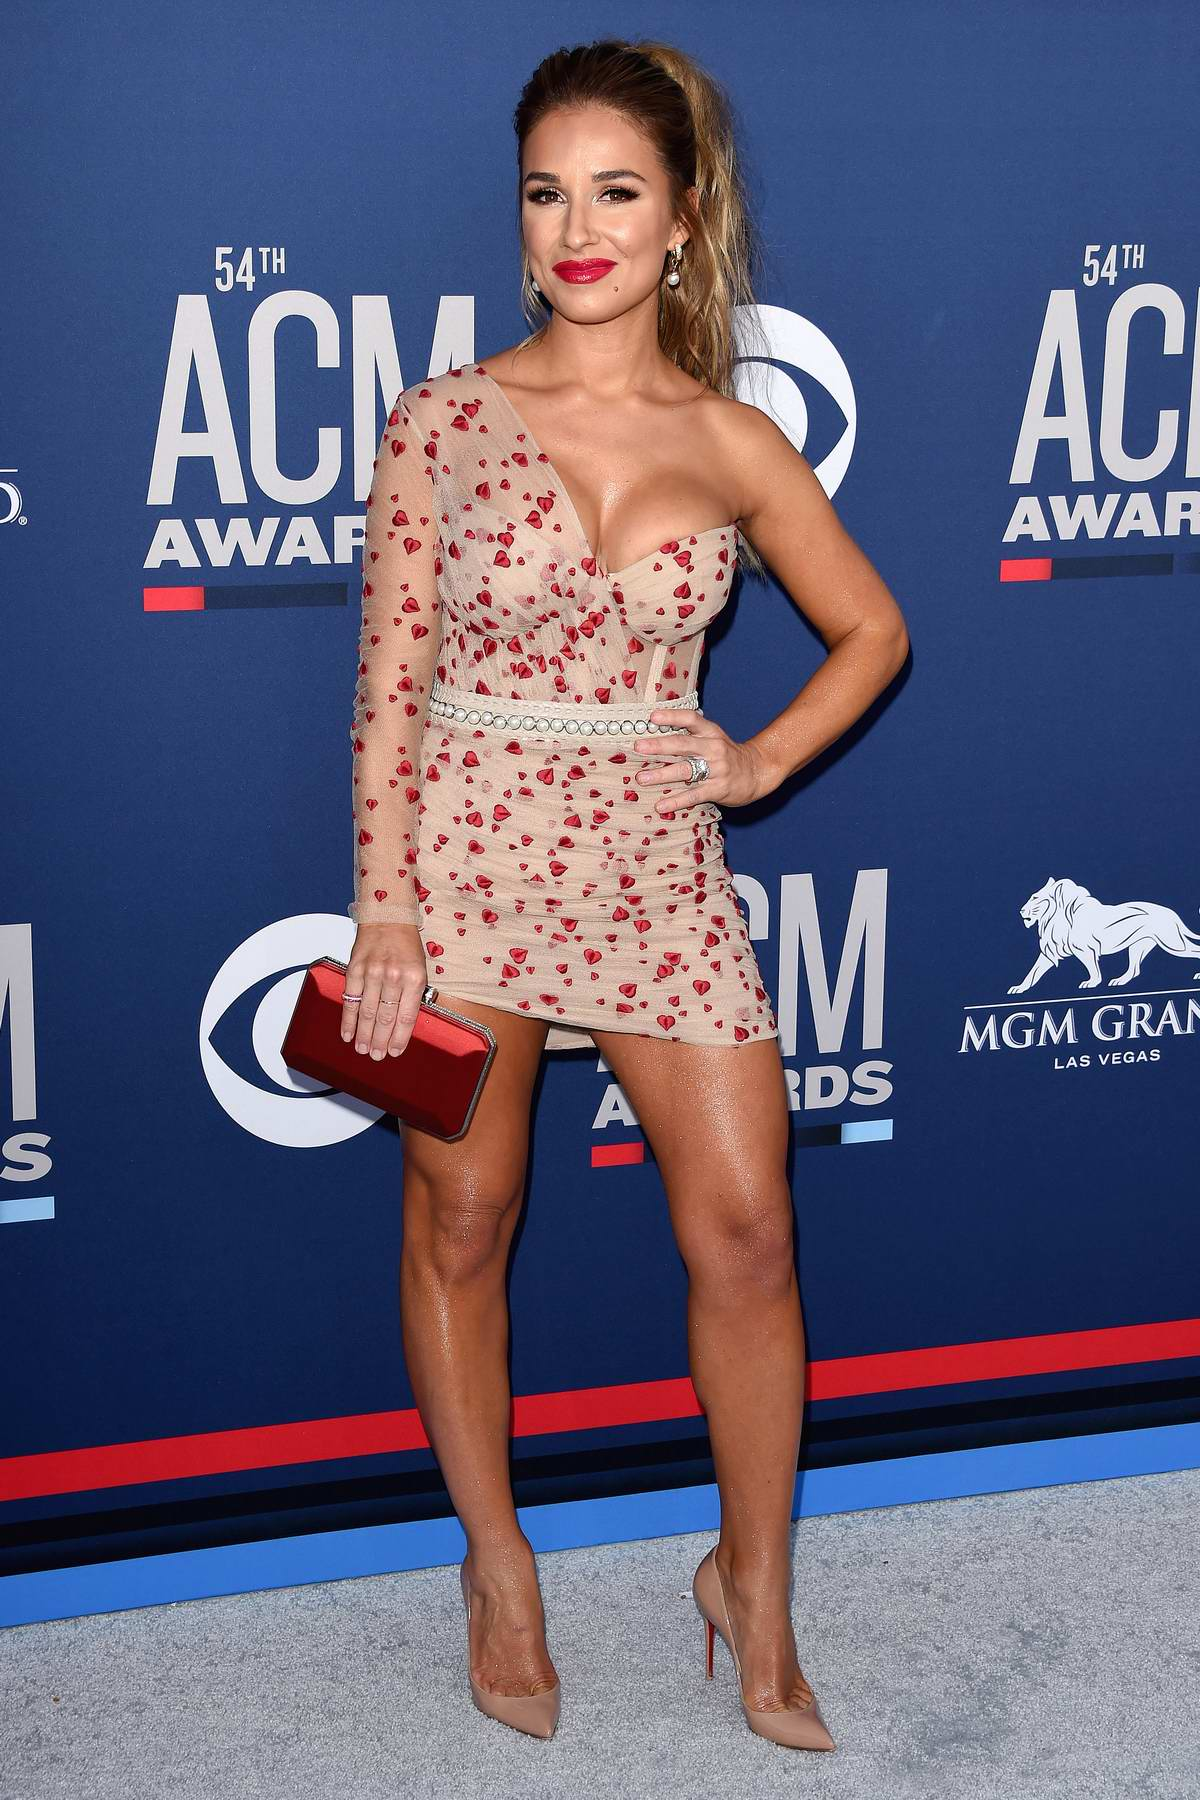 Jessie James Decker attends the 54th Academy of Country Music Awards (ACM 2019) at MGM Grand in Las Vegas, Nevada